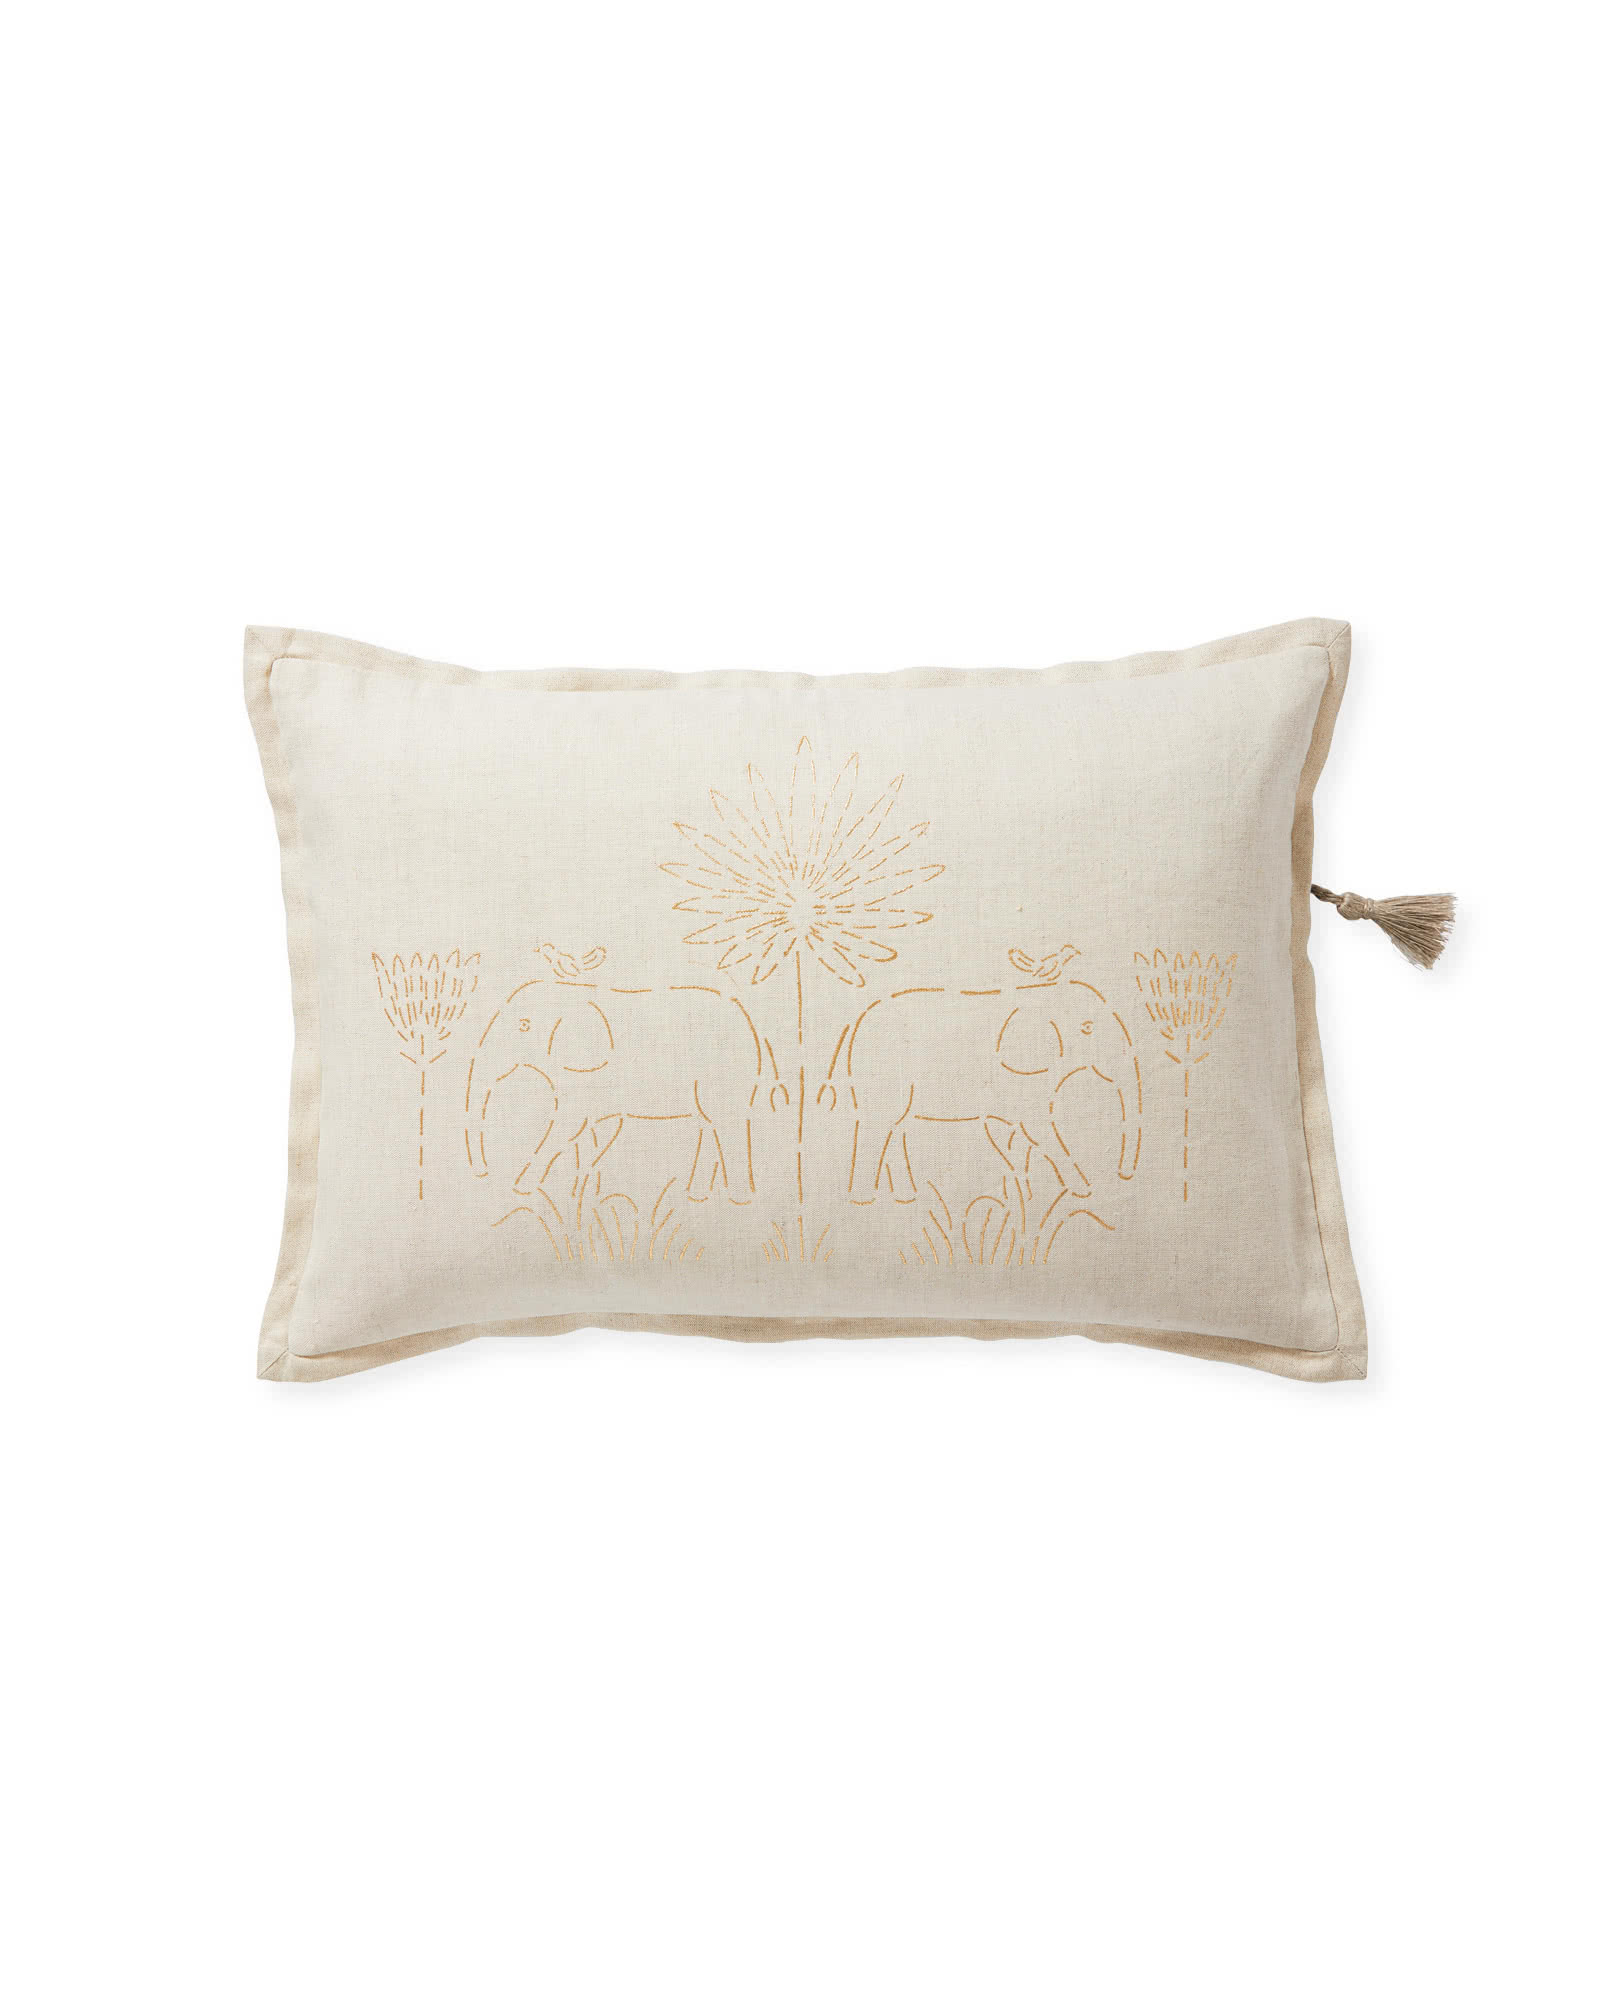 Kalahari Pillow Cover,